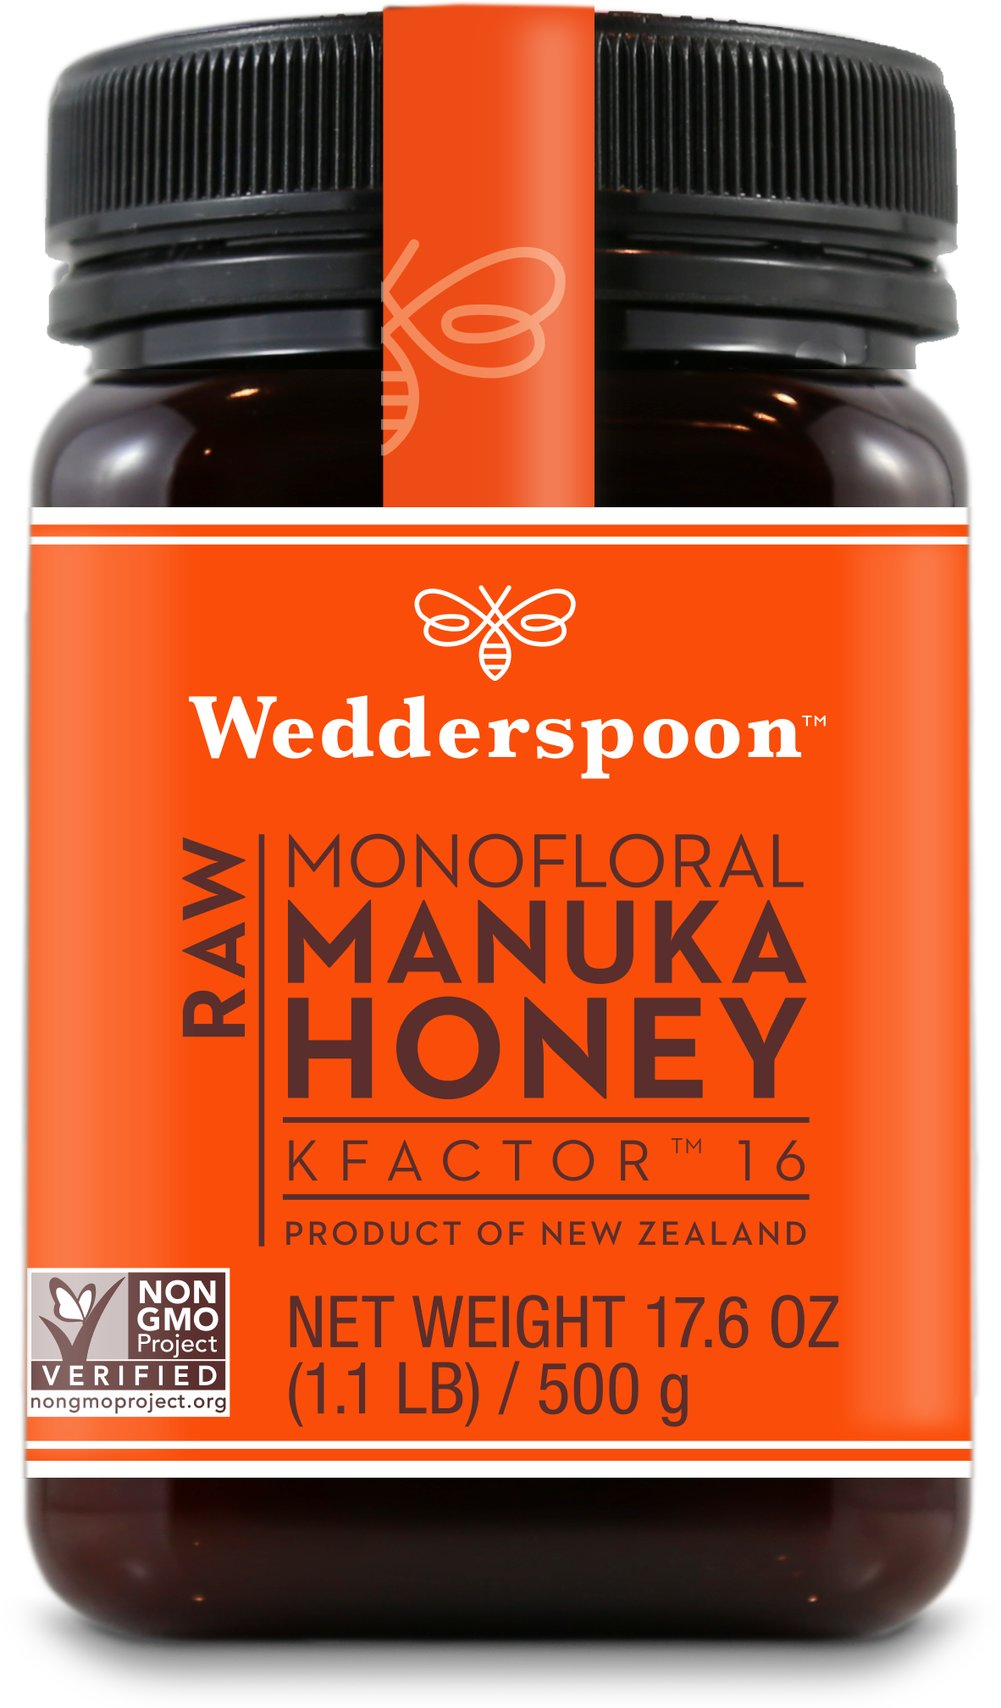 100% Raw Premium Manuka Honey KFactor 16  17.6 oz Jar  $39.99